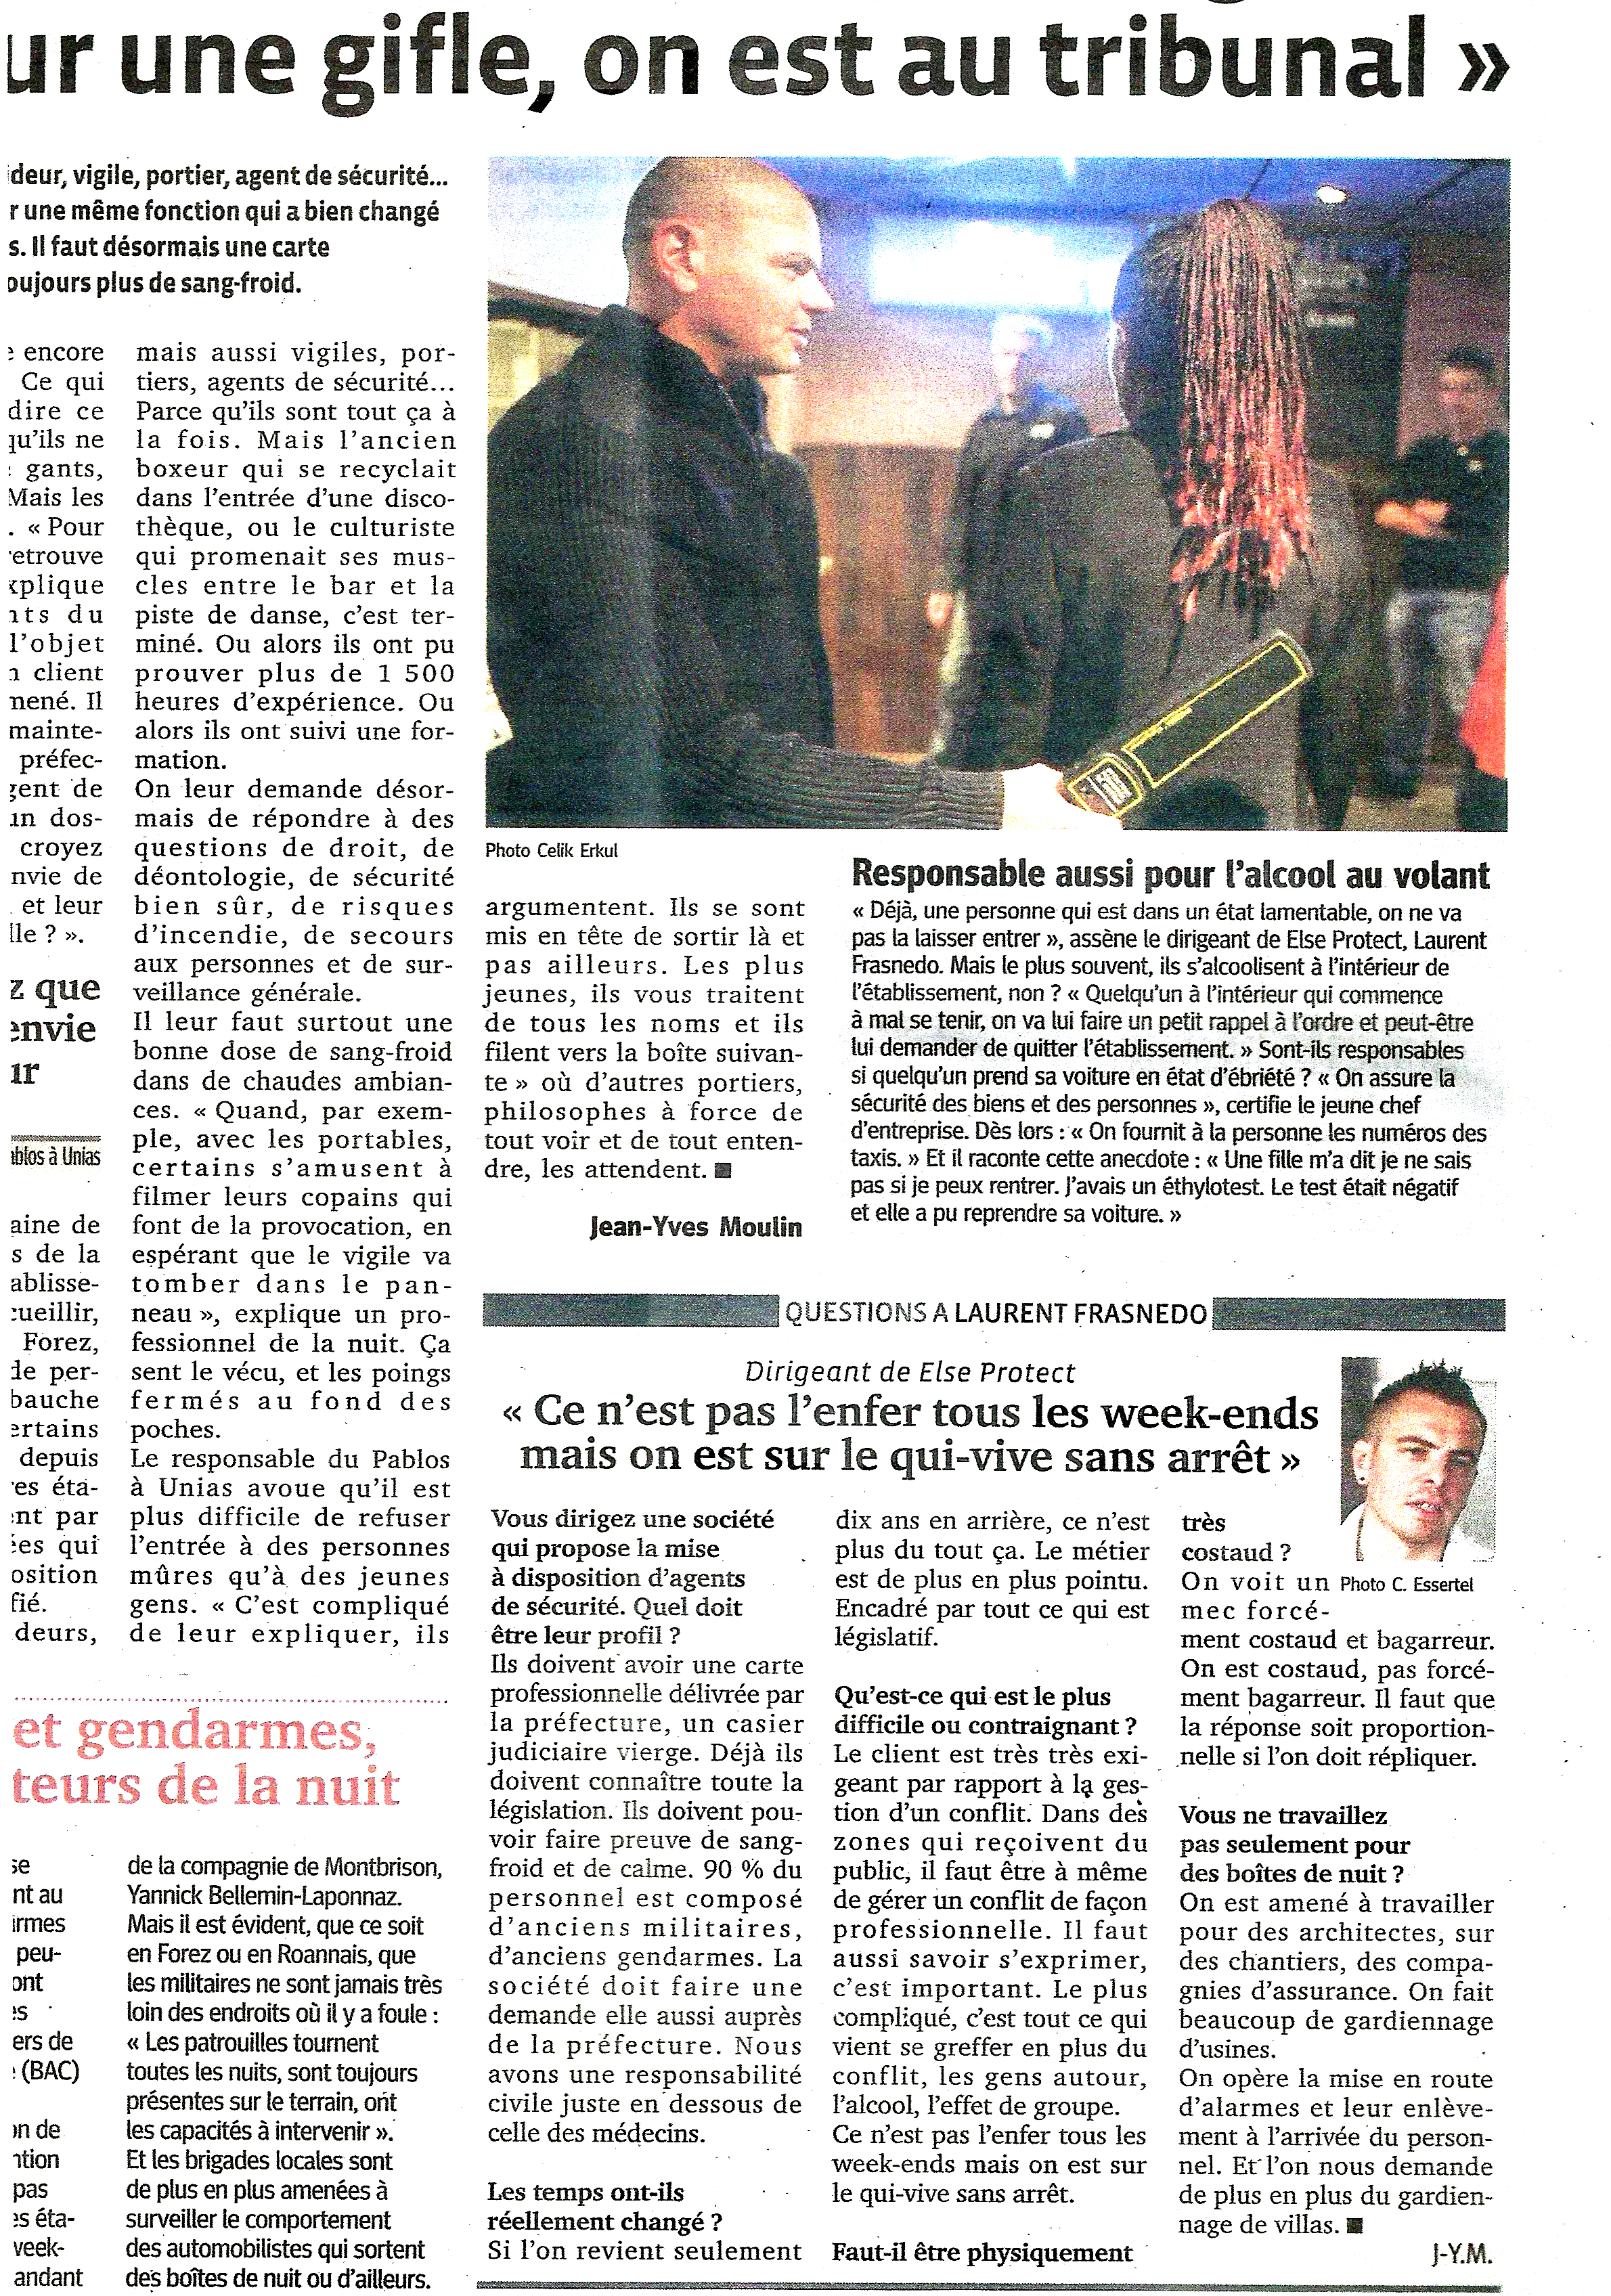 parution-presse-elseprotect-journal-le-progres